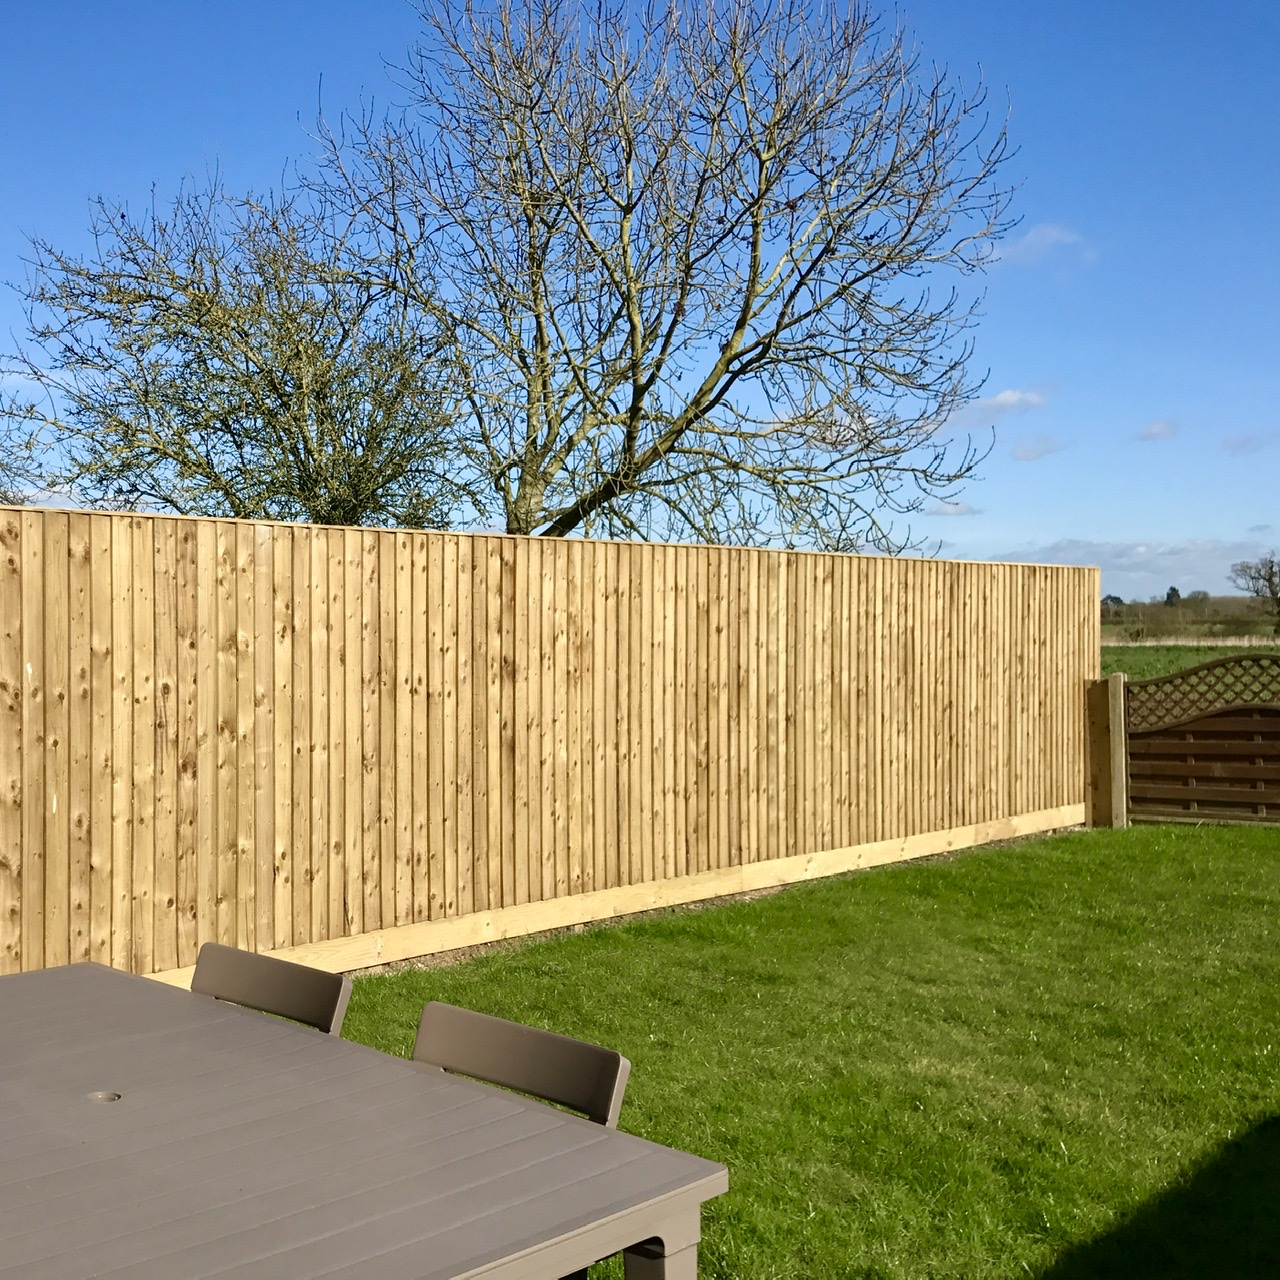 fencing landscaping services lincoln